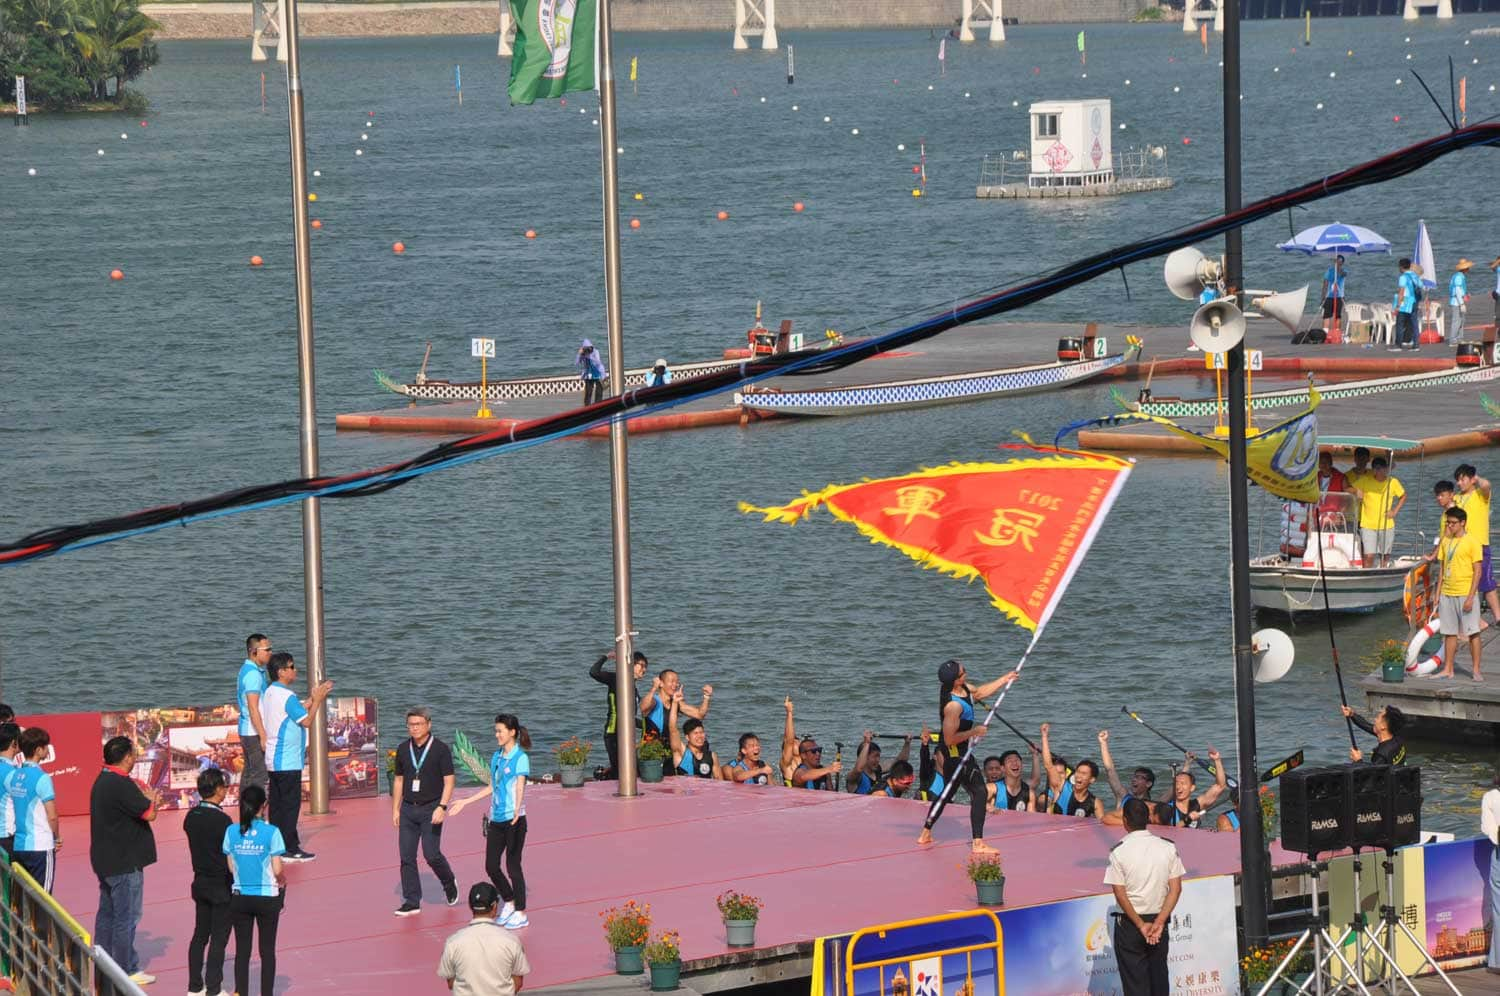 Macau Dragonboat Races victor waiving a flag